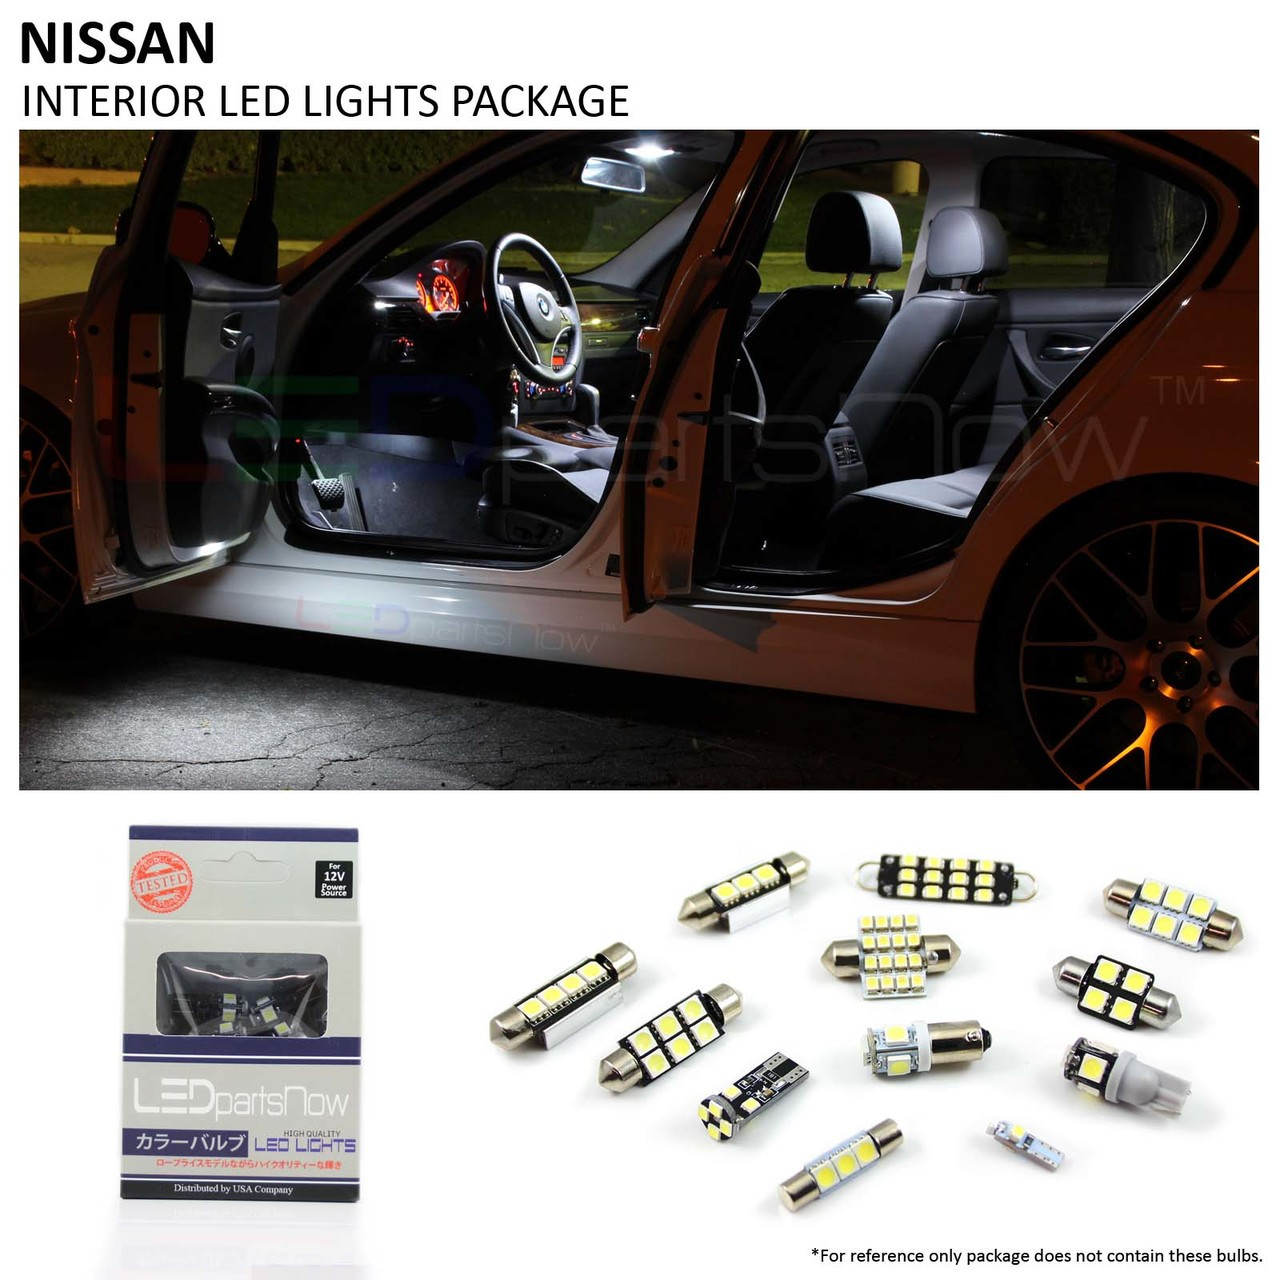 Bright White 16 Lights SMD LED Interior Kit Package For Nissan Altima 2007-2012